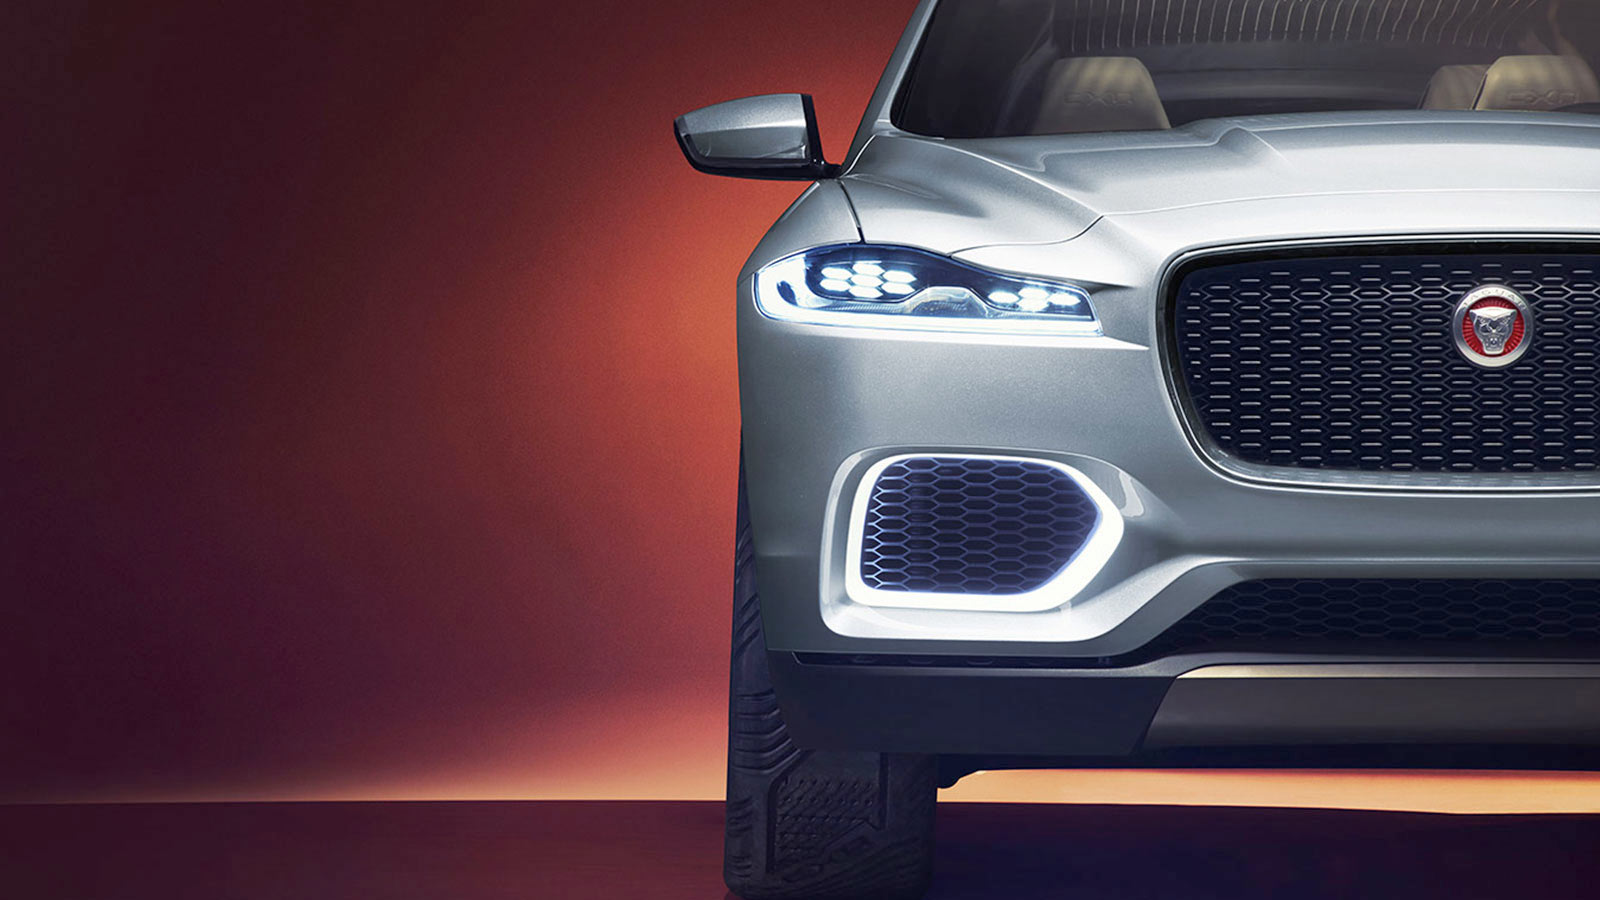 Close up shot of the Jaguar C-X17 grille.